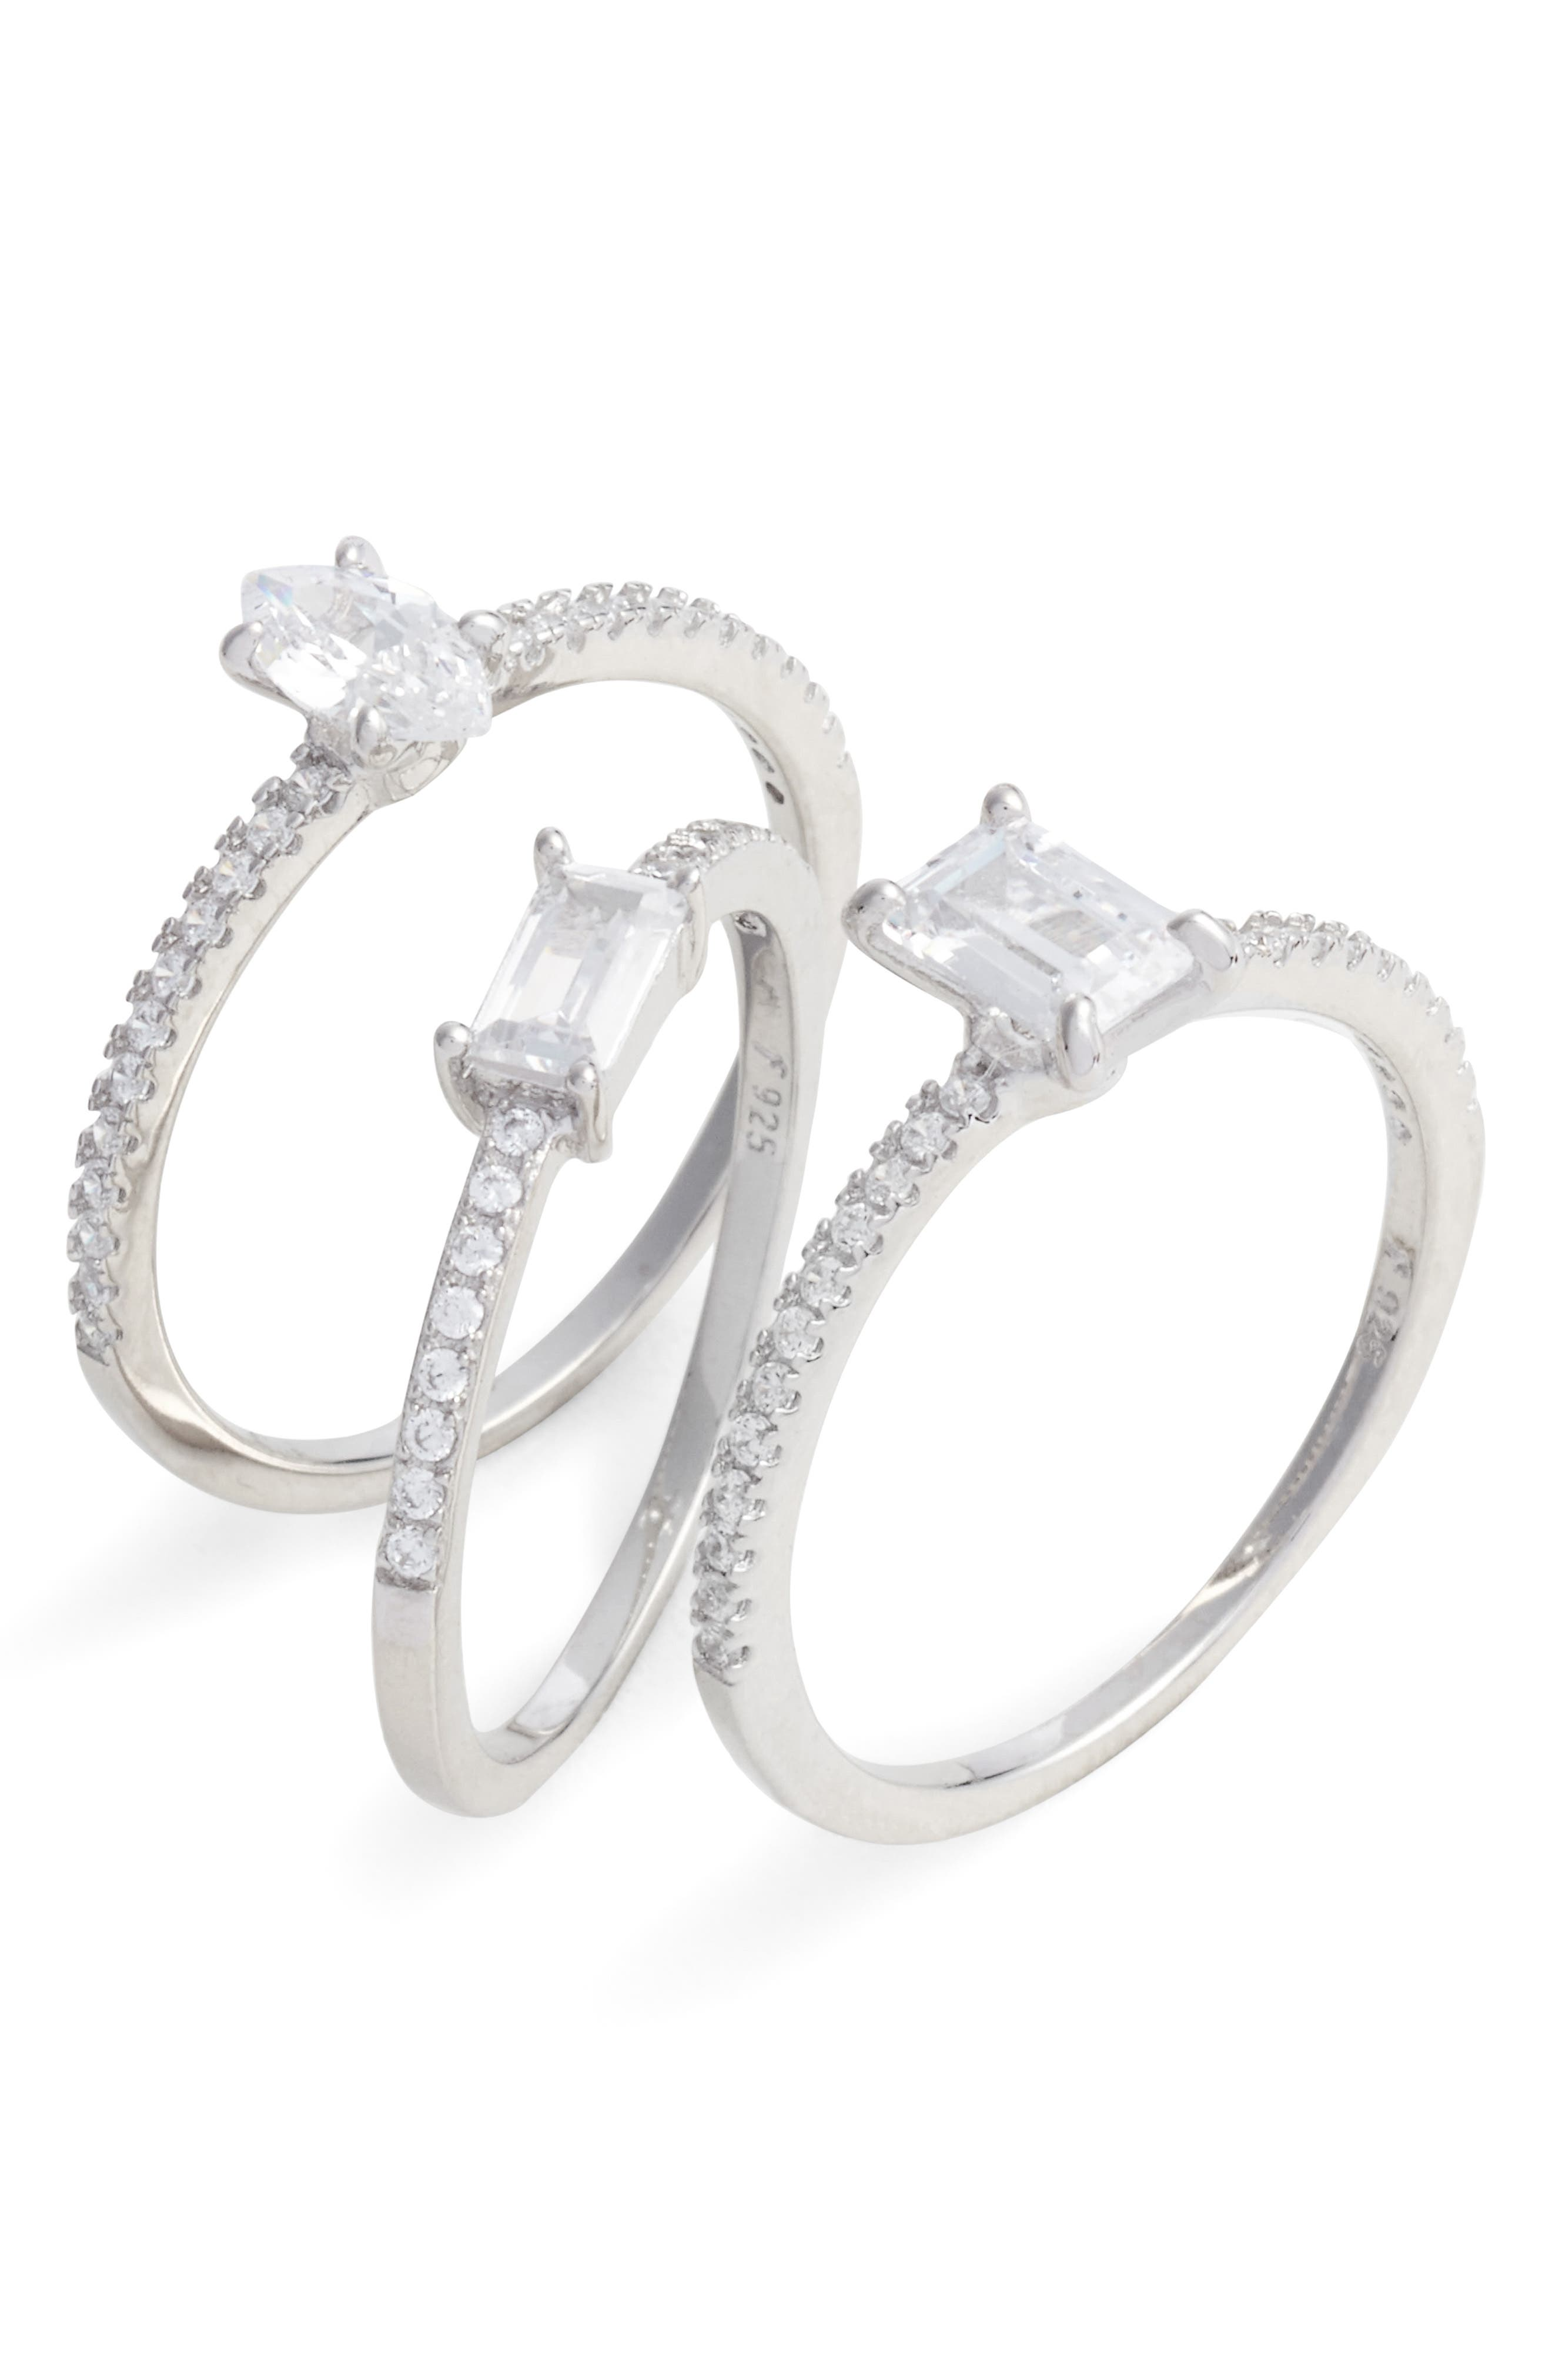 Nordstrom Set of 3 Mix Shape Cubic Zirconia Rings